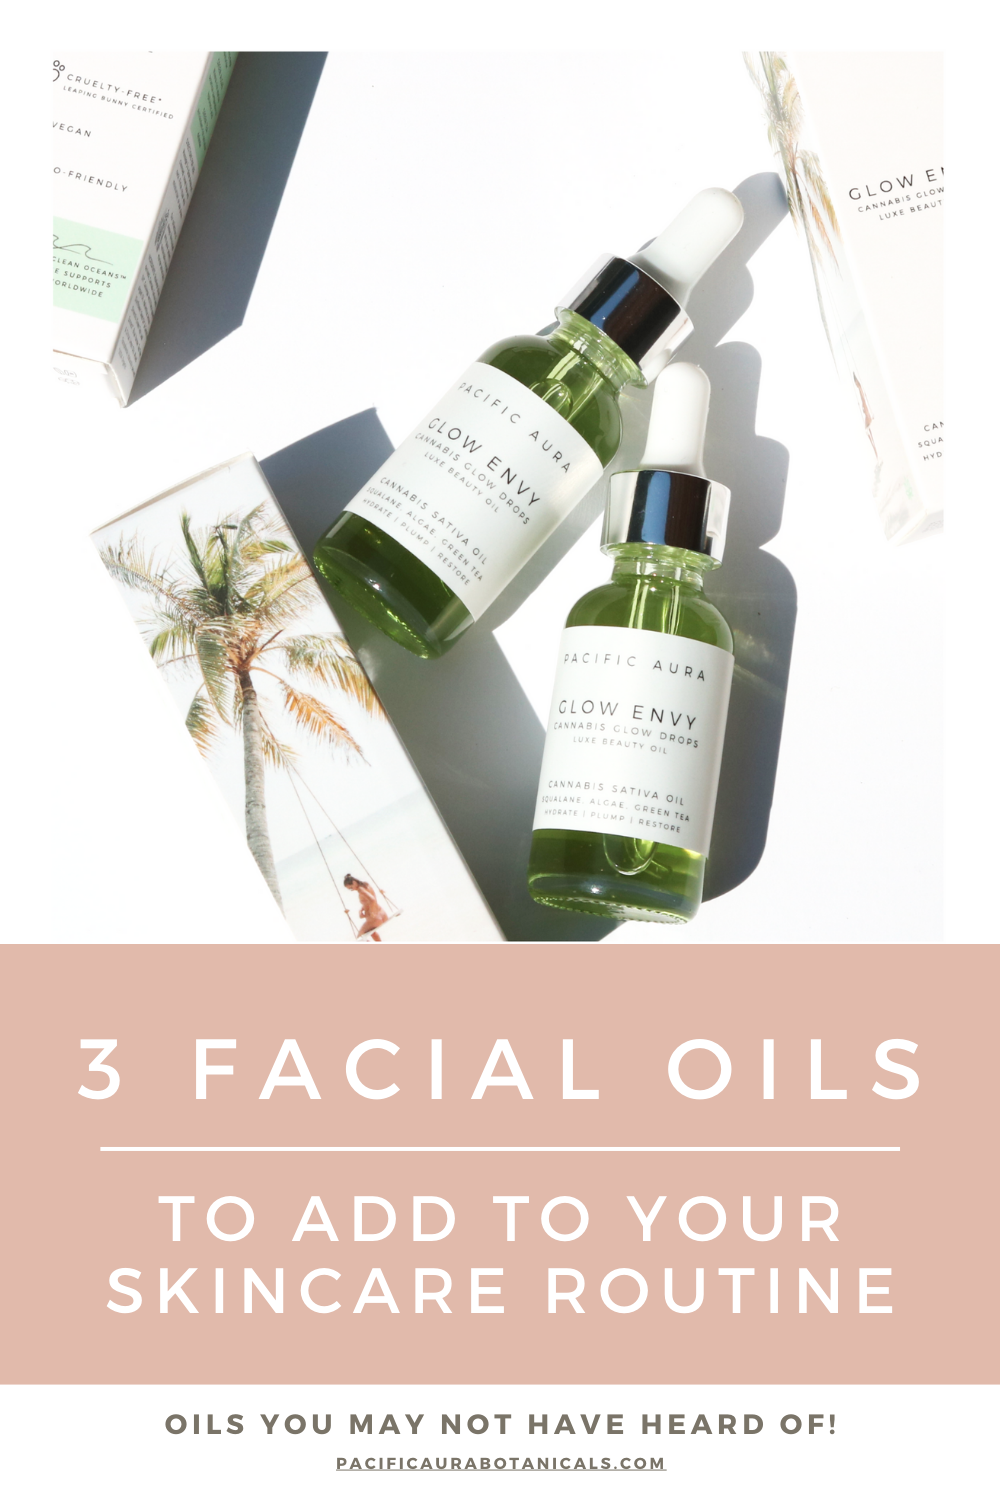 3 facial oils to add to your skincare routine